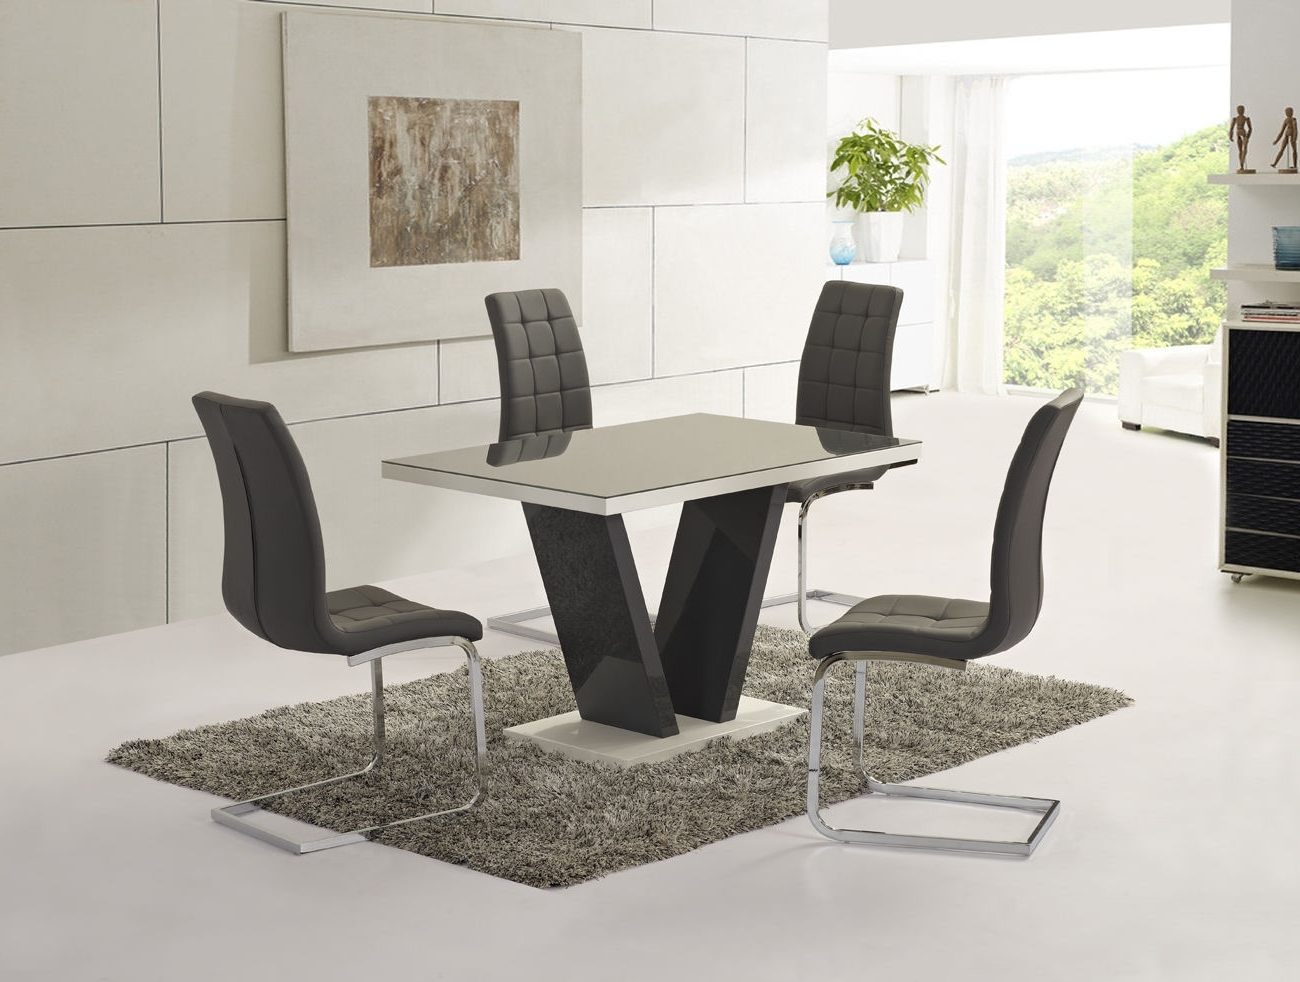 Most Recent White High Gloss Dining Tables And Chairs Pertaining To Ga Vico Gloss Grey Glass Top Designer 160Cm Dining Set – 4 6 Grey (View 11 of 25)